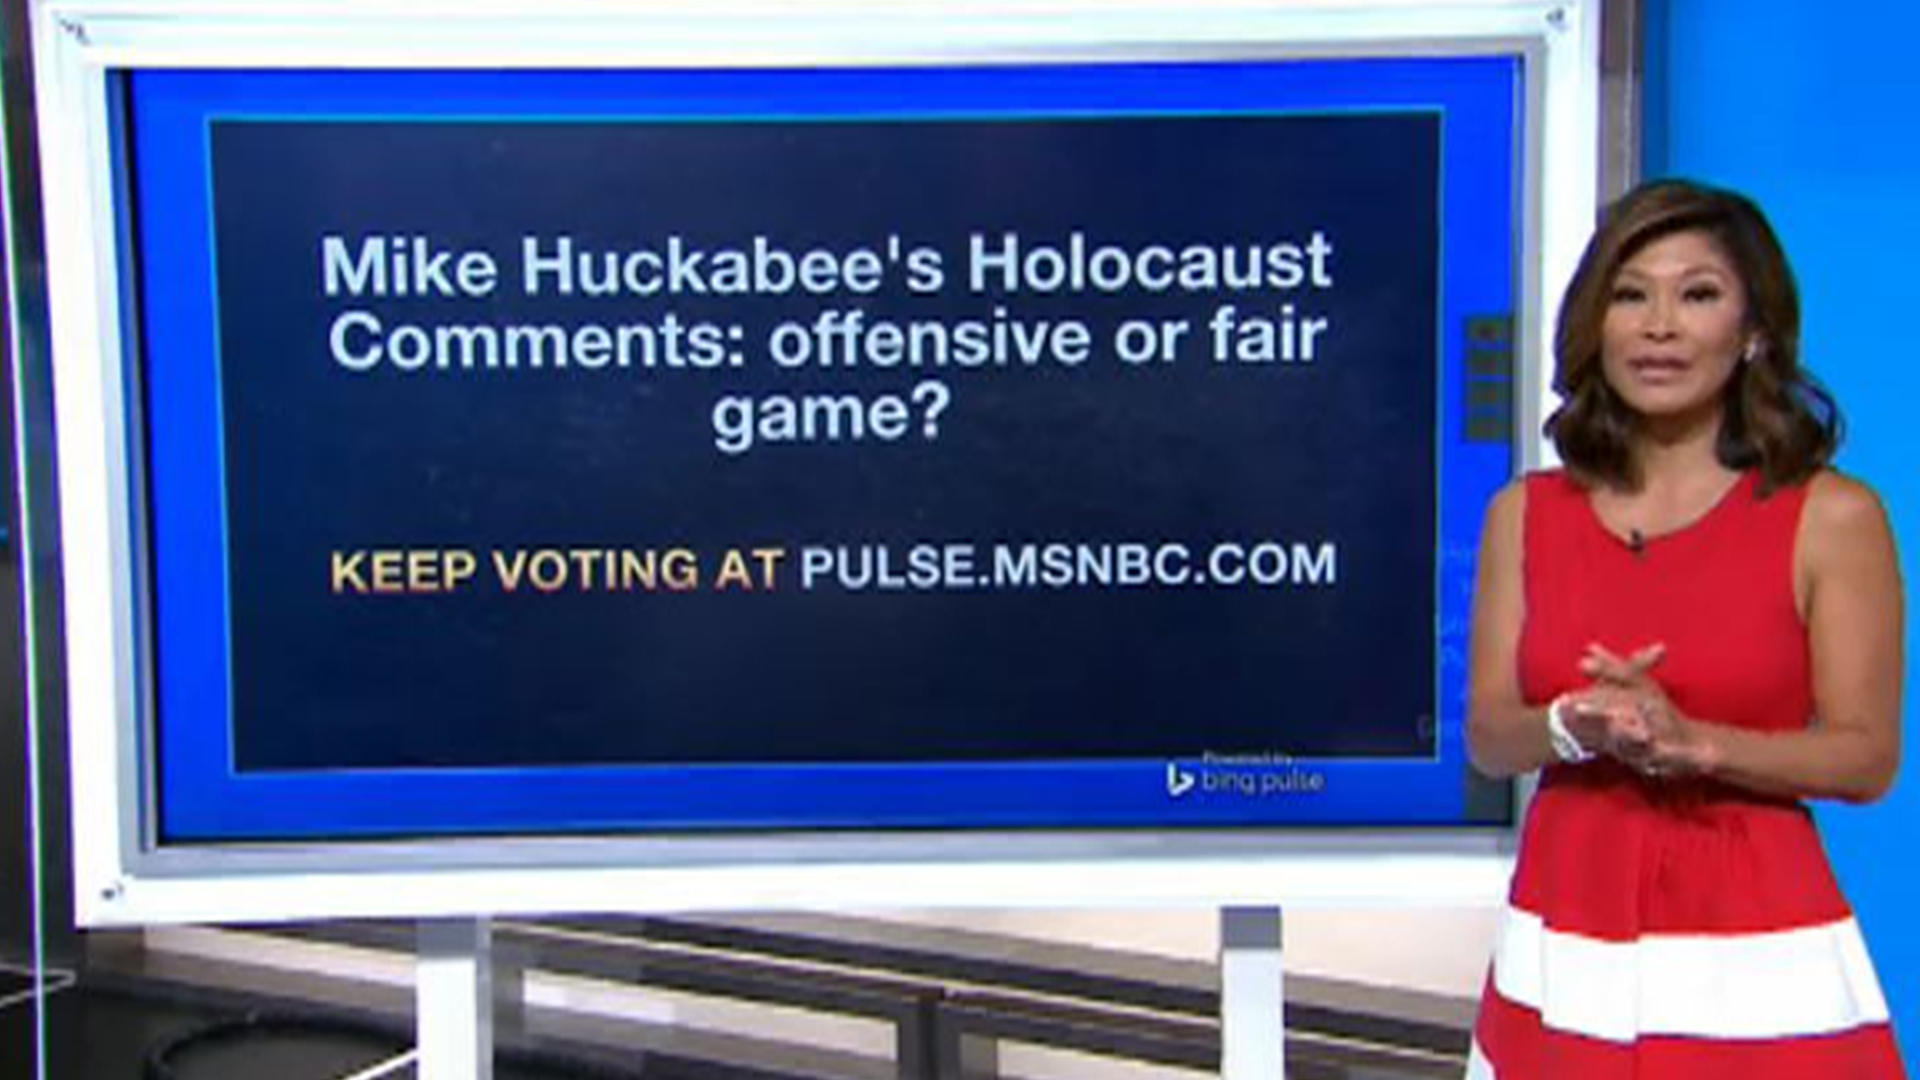 Mike Huckabee's Holocaust comments